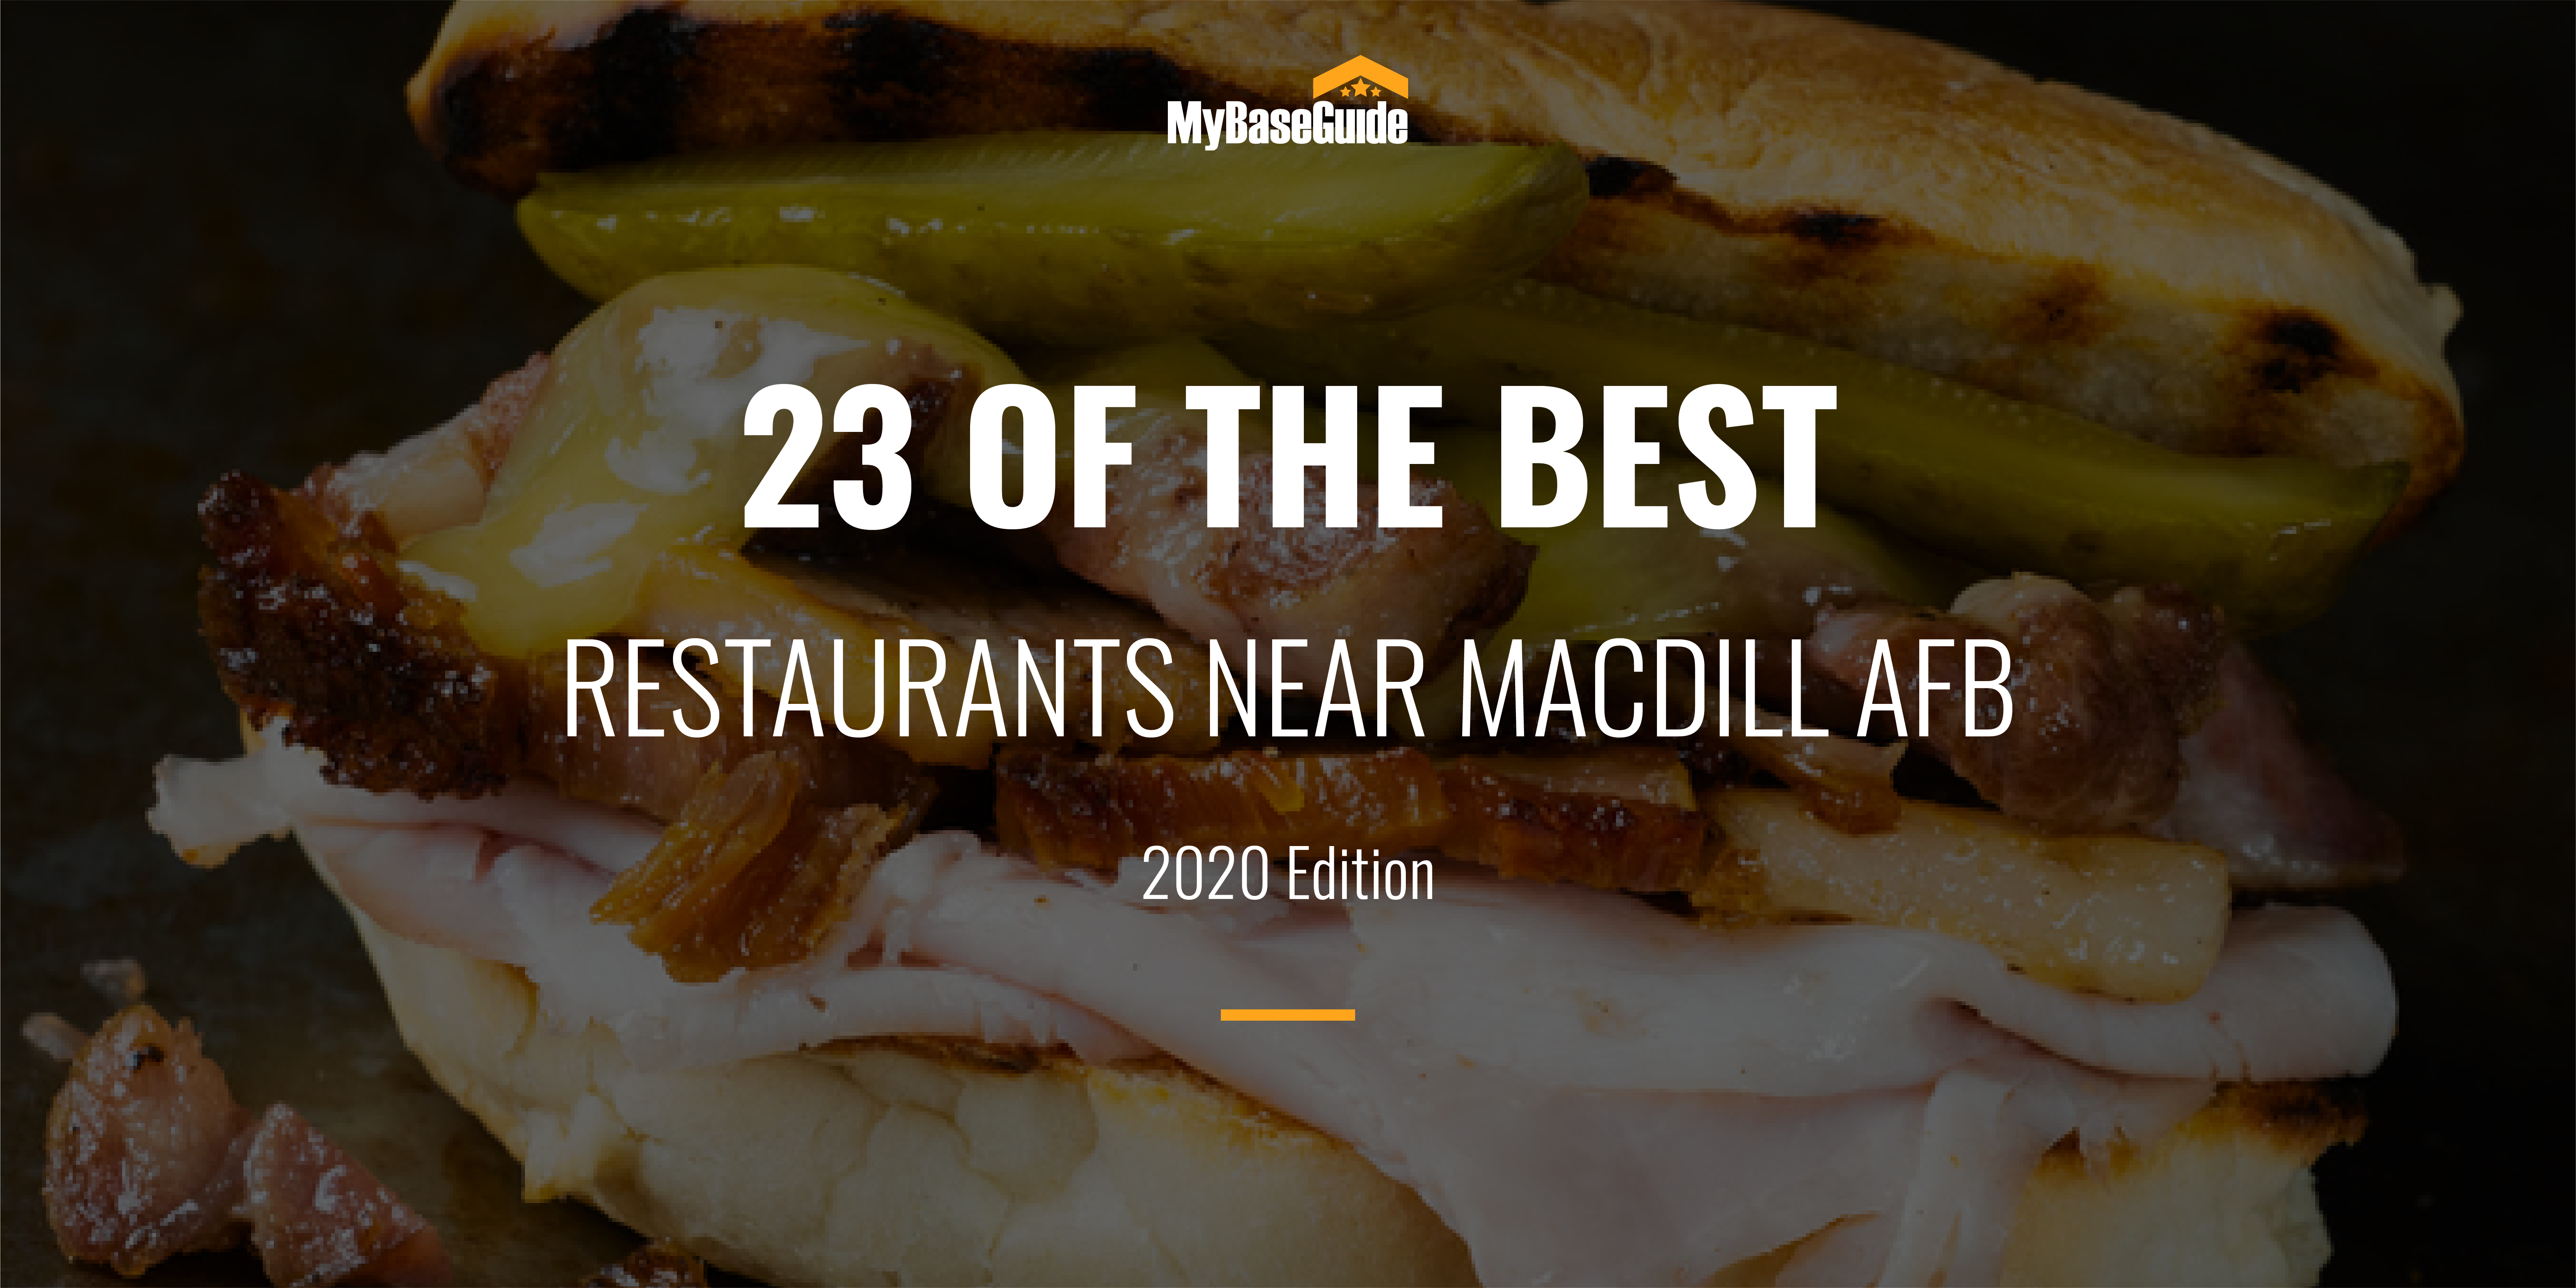 23 Of the Best Restaurants Near MacDill AFB